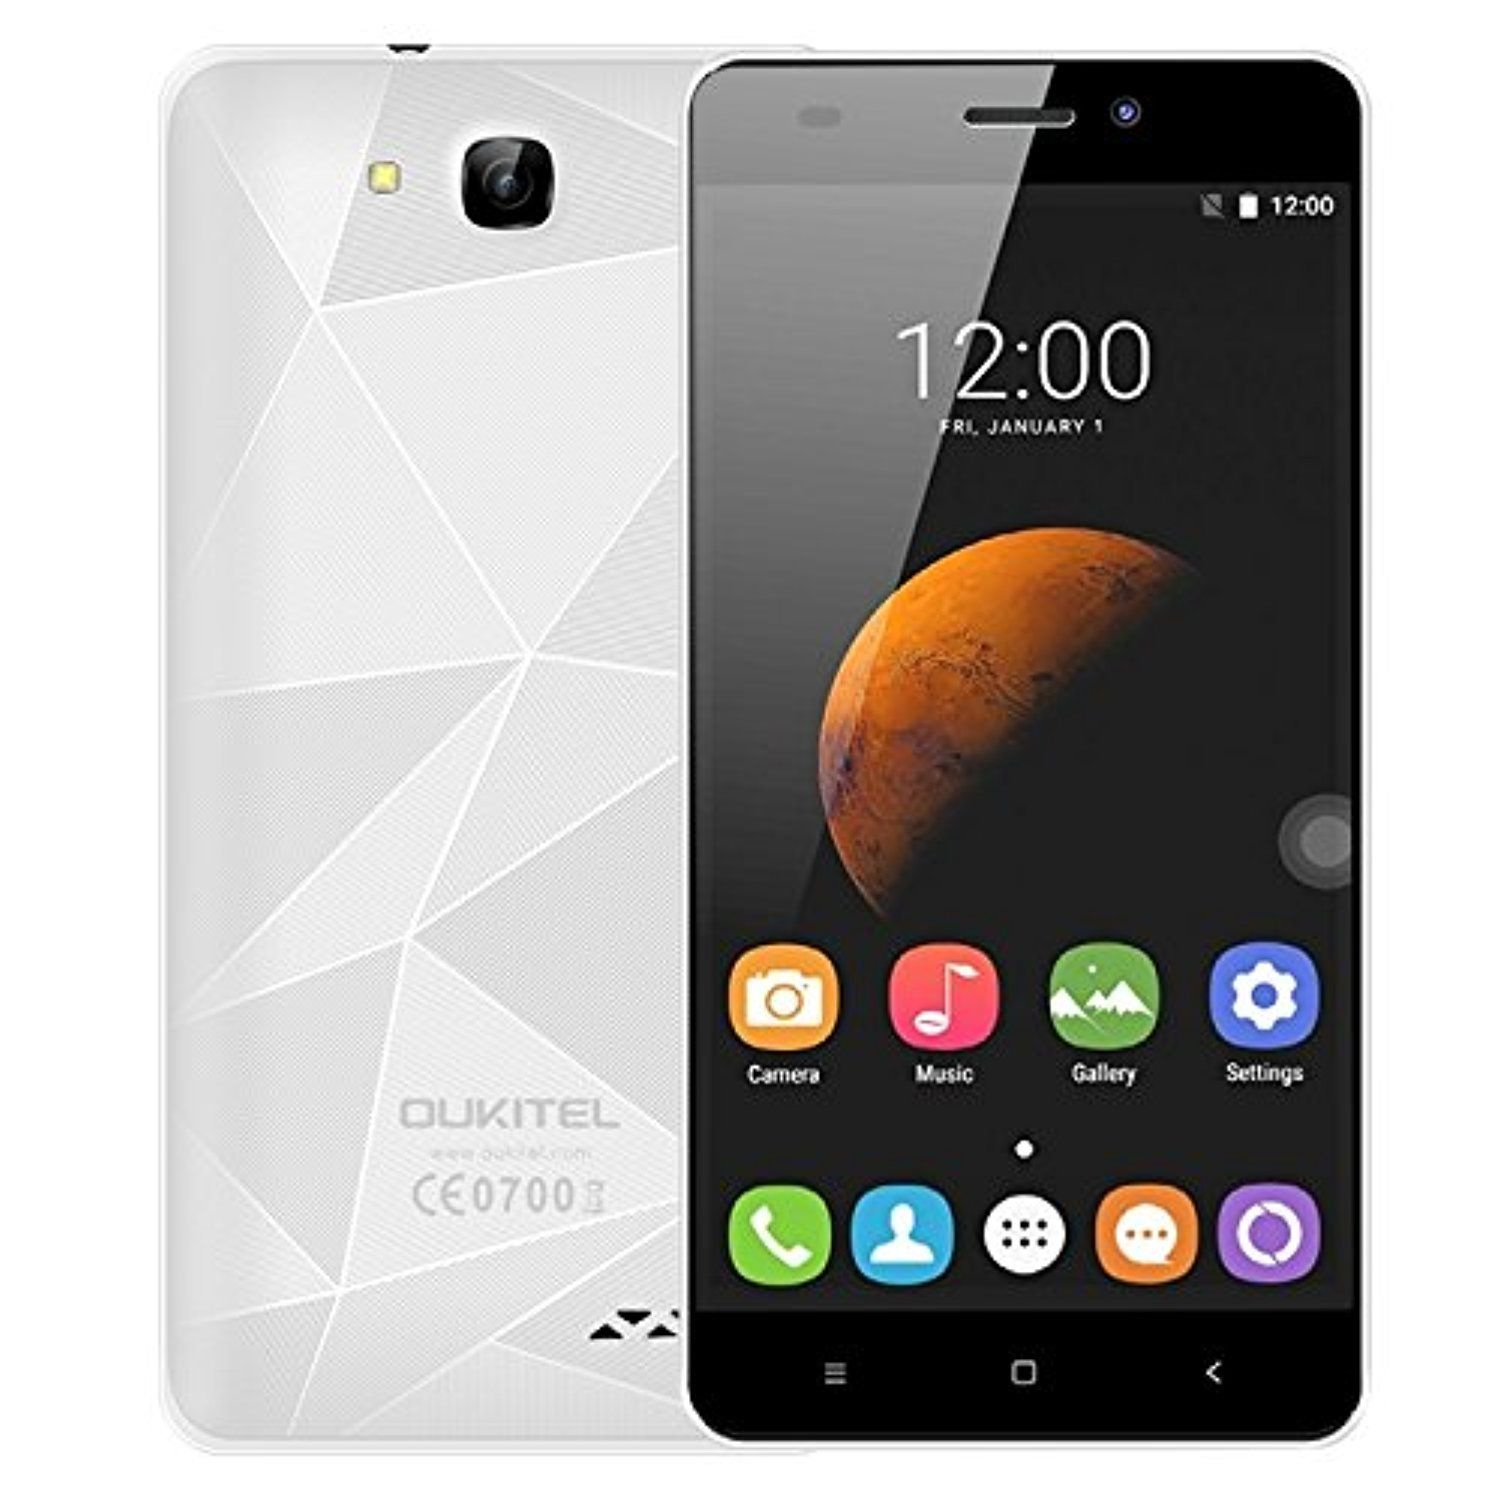 Generic OUKITEL C3 8GB, Network: 3G, 3D Diamond Designed Back Cover, 5.0 inch Android 6.0 MT6580 Quad Core 1.3GHz, RAM: 1GB(White) -- Awesome products selected by Anna Churchill